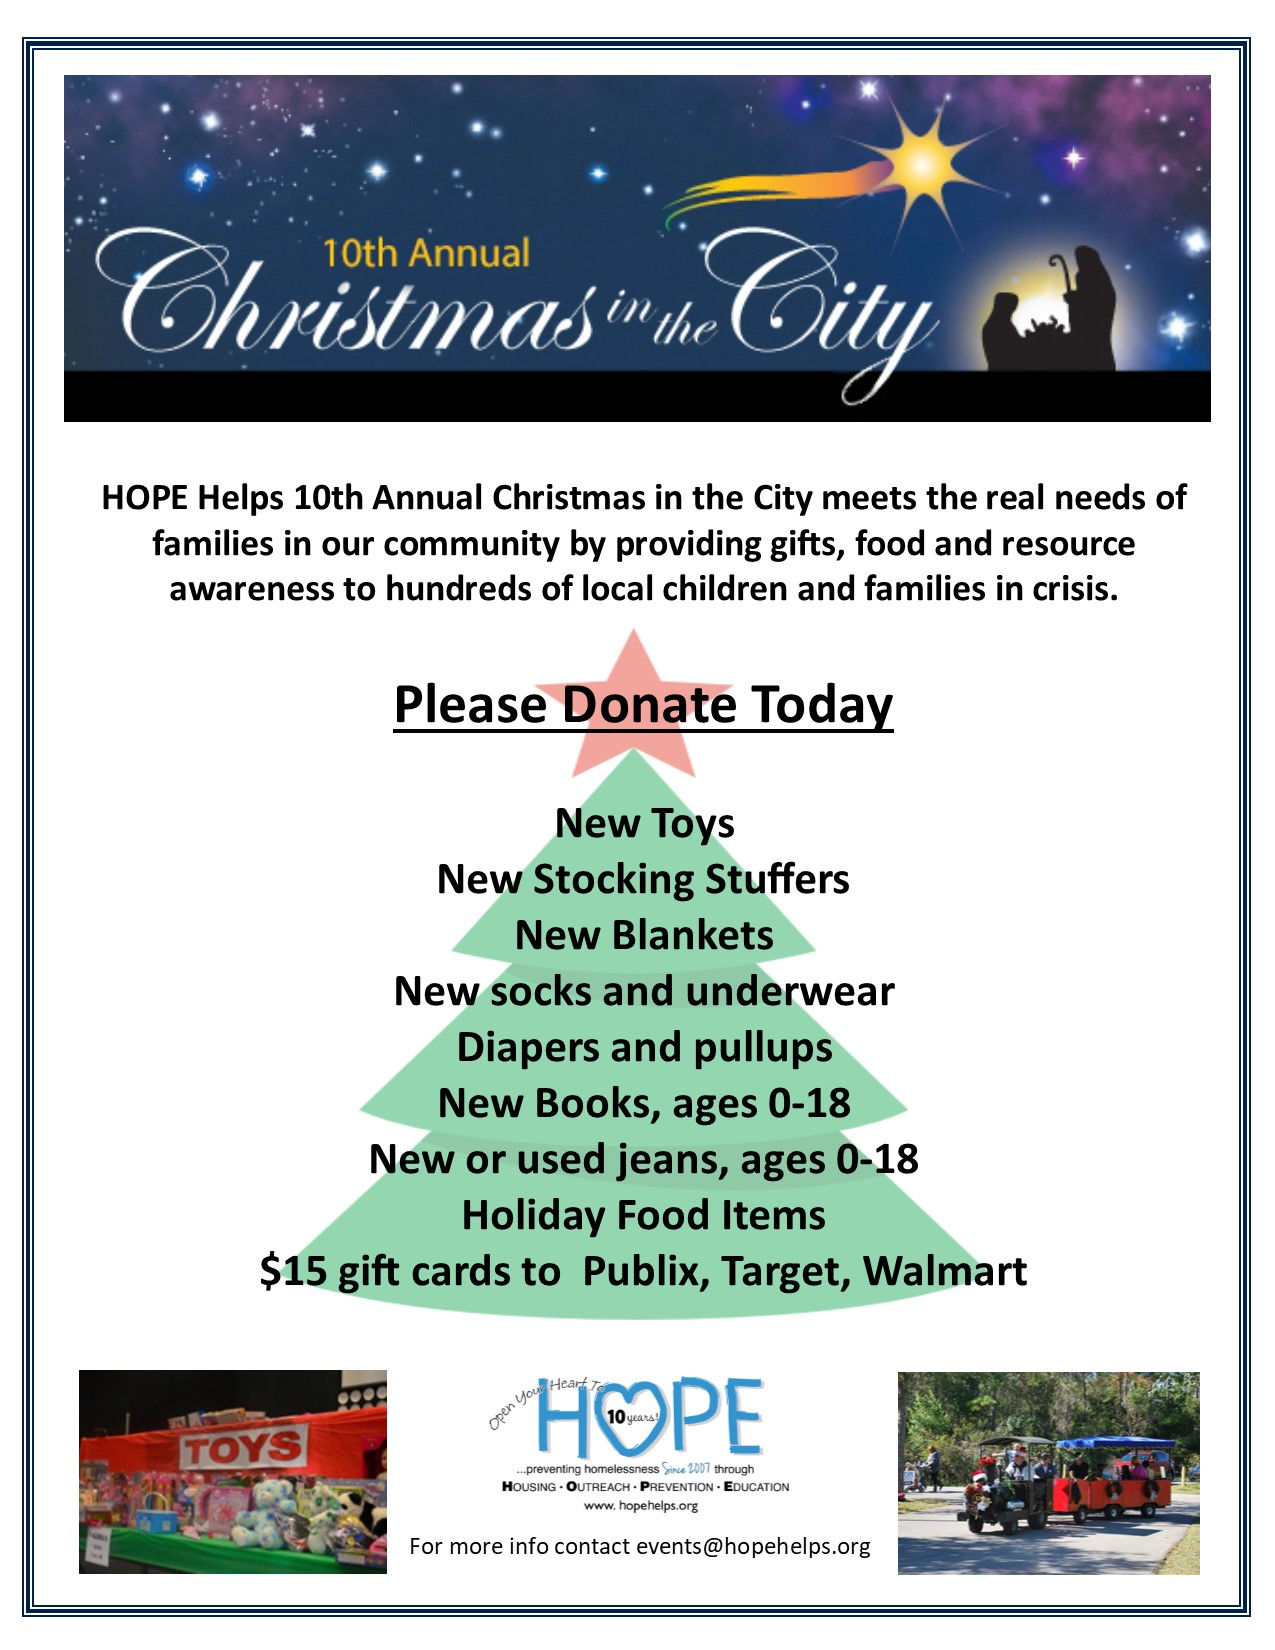 Christmas in the City – 2017 Donation Box Locations